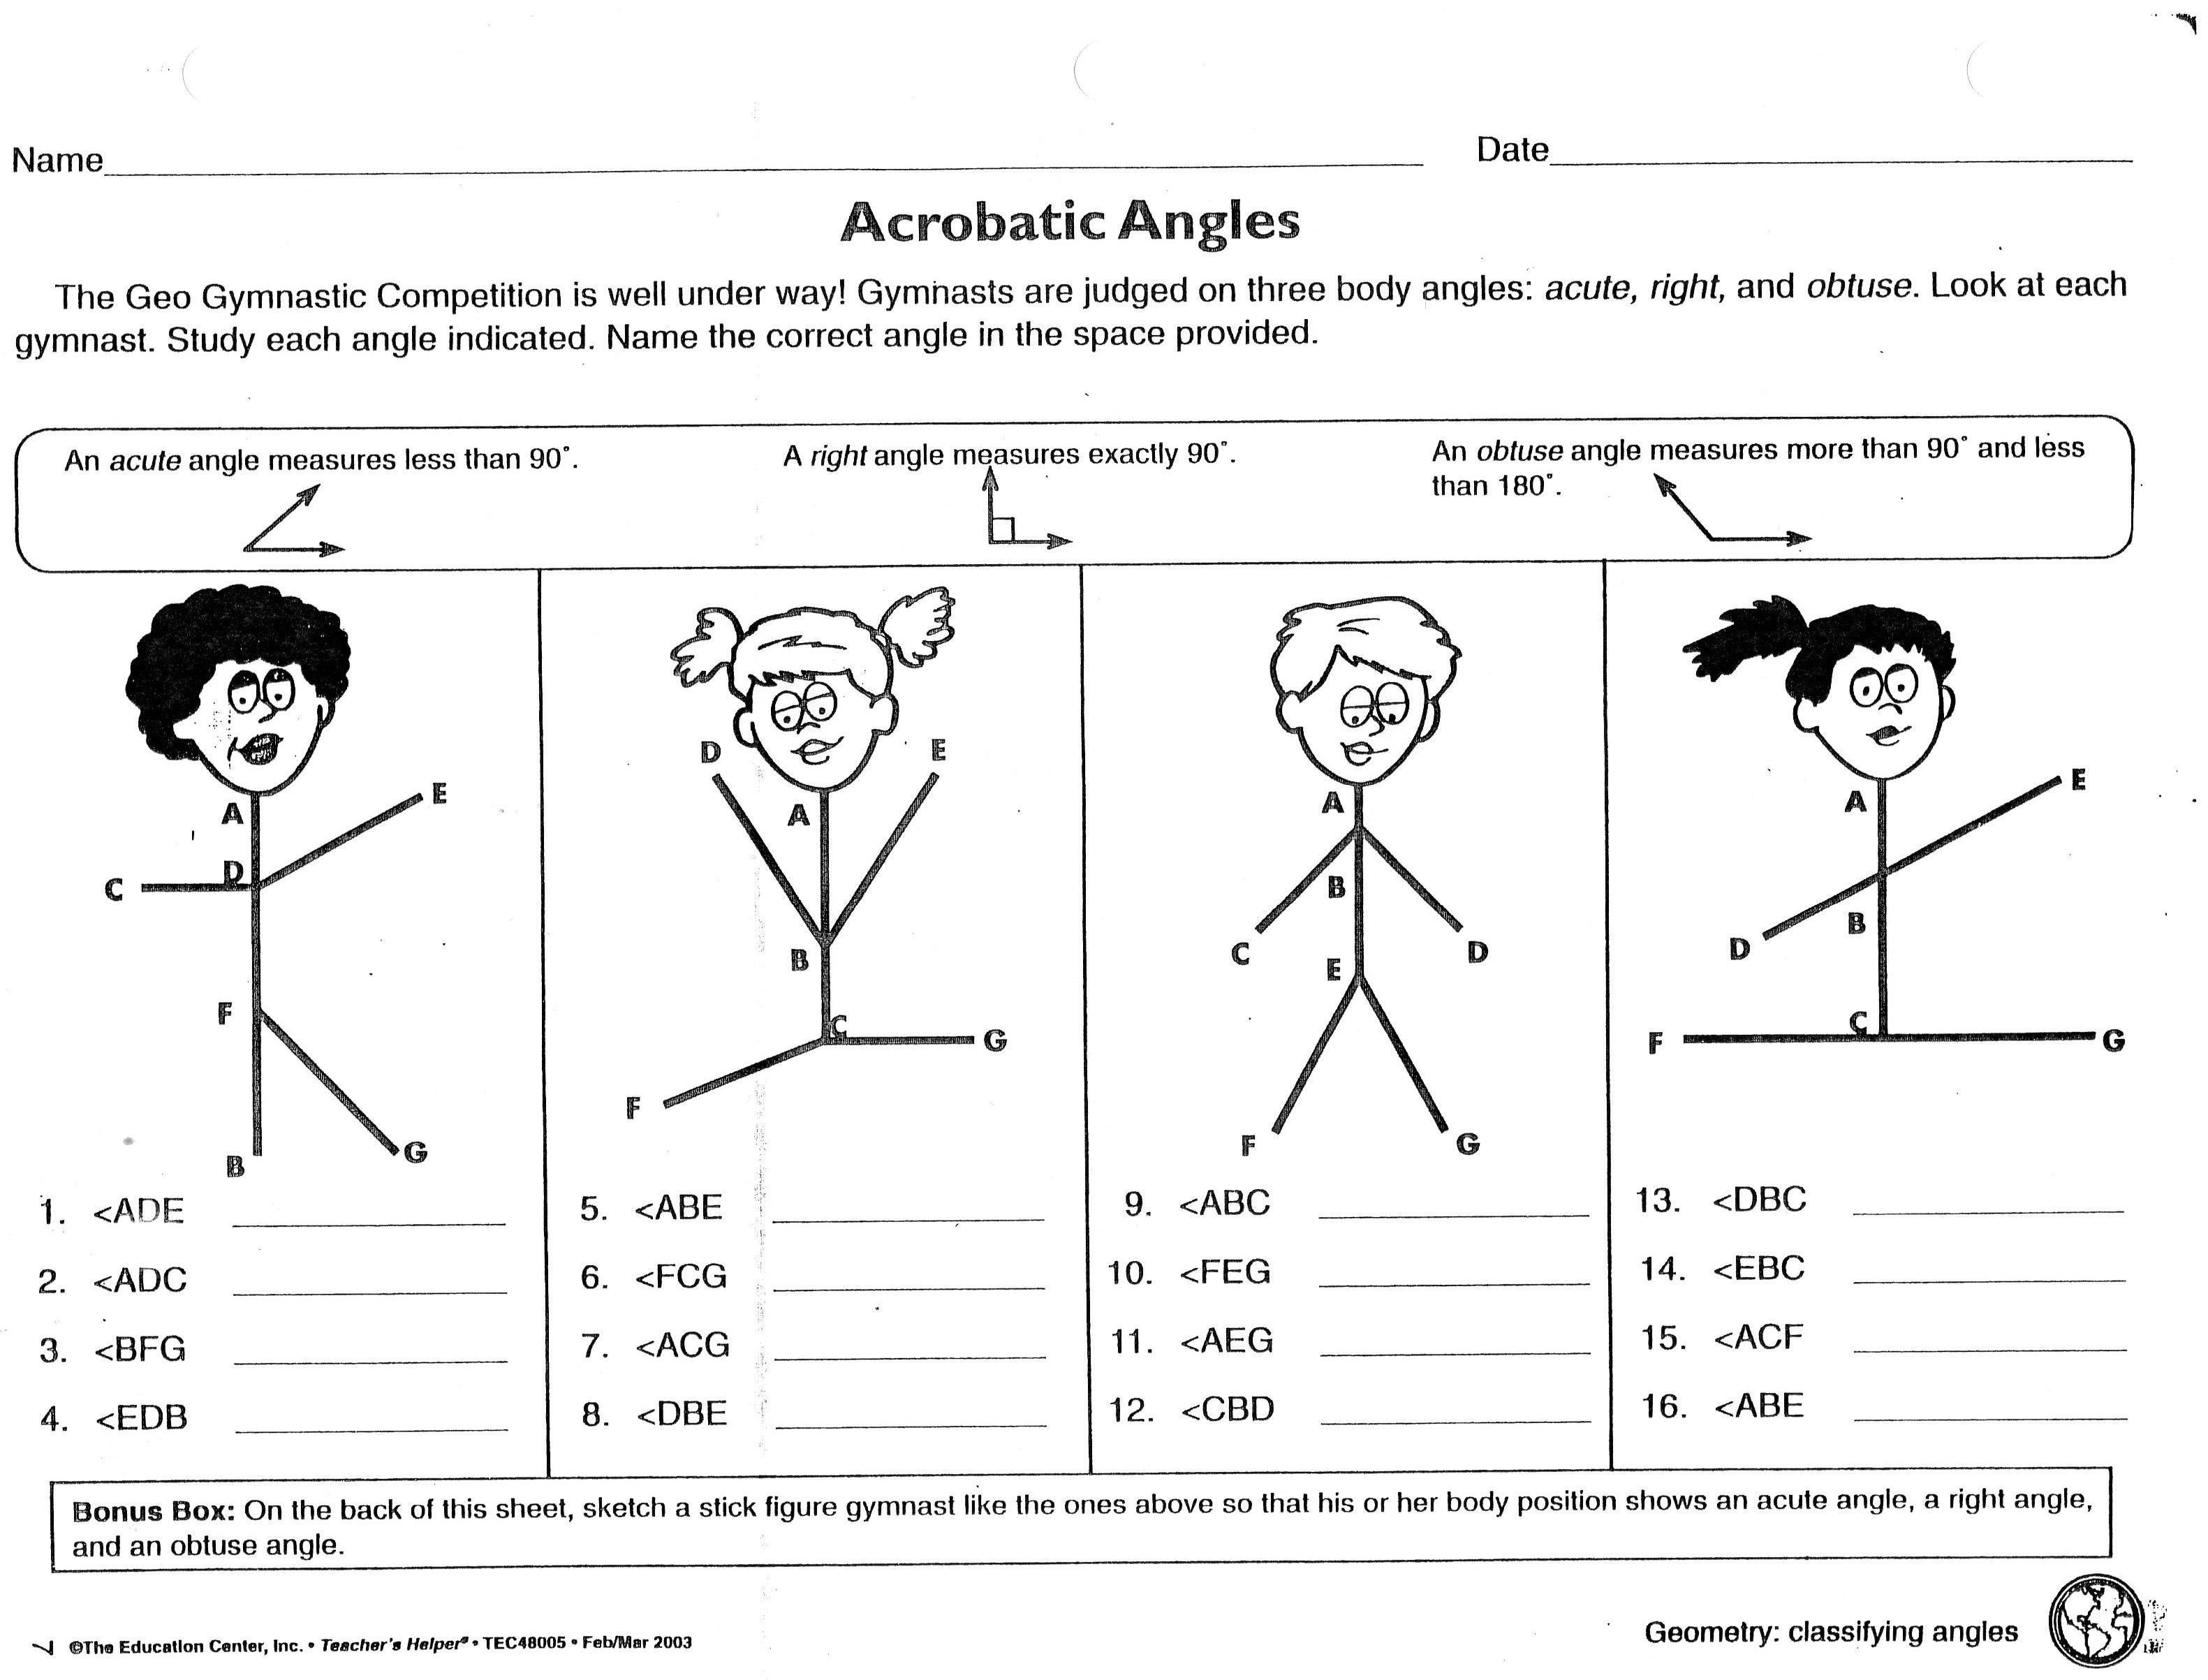 Worksheets Classifying Angles Worksheet phase iii acrobatic angles worksheet jpg